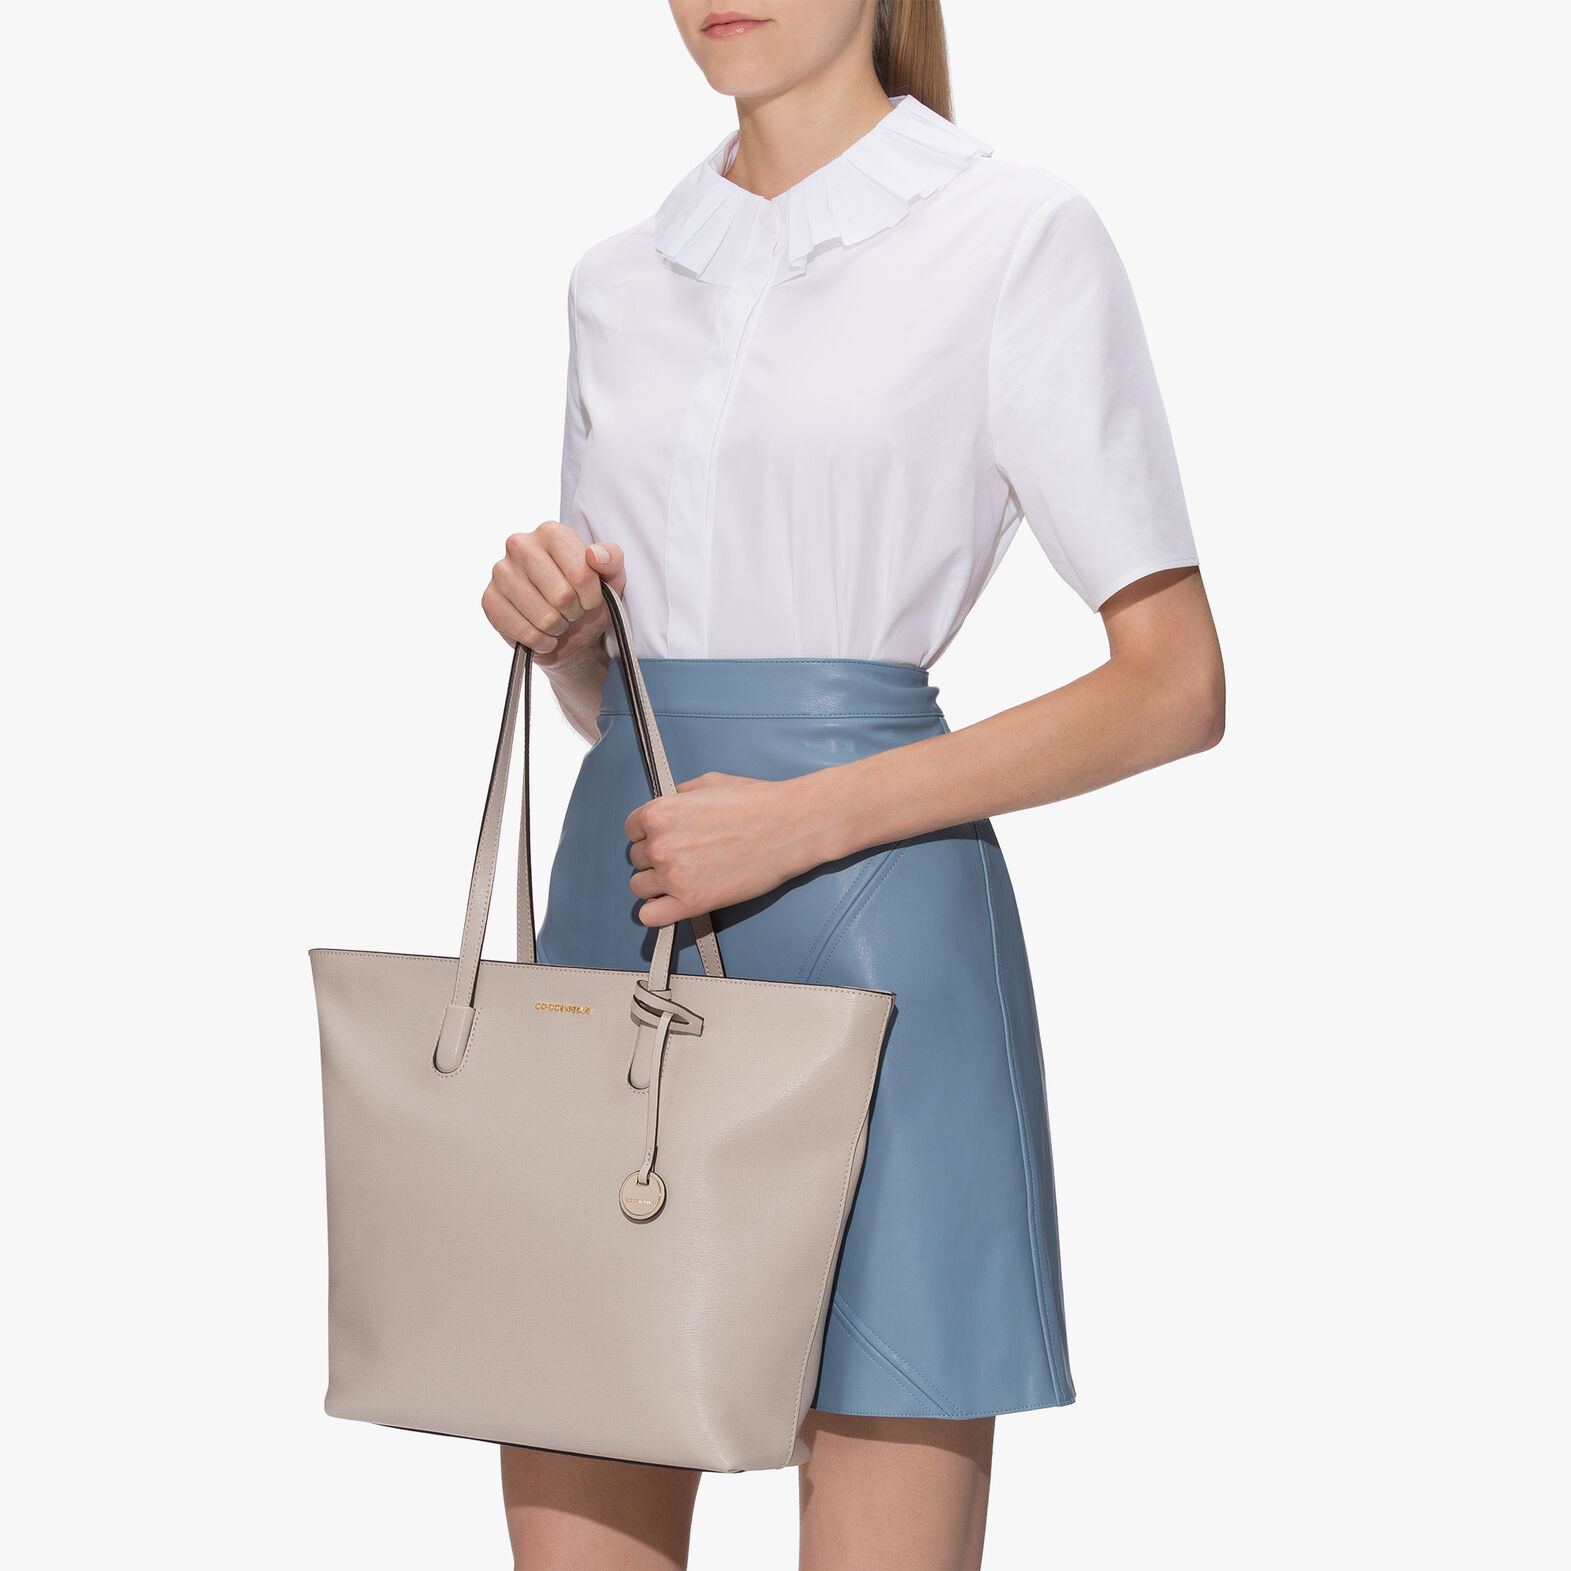 Clementine saffiano shopping tote